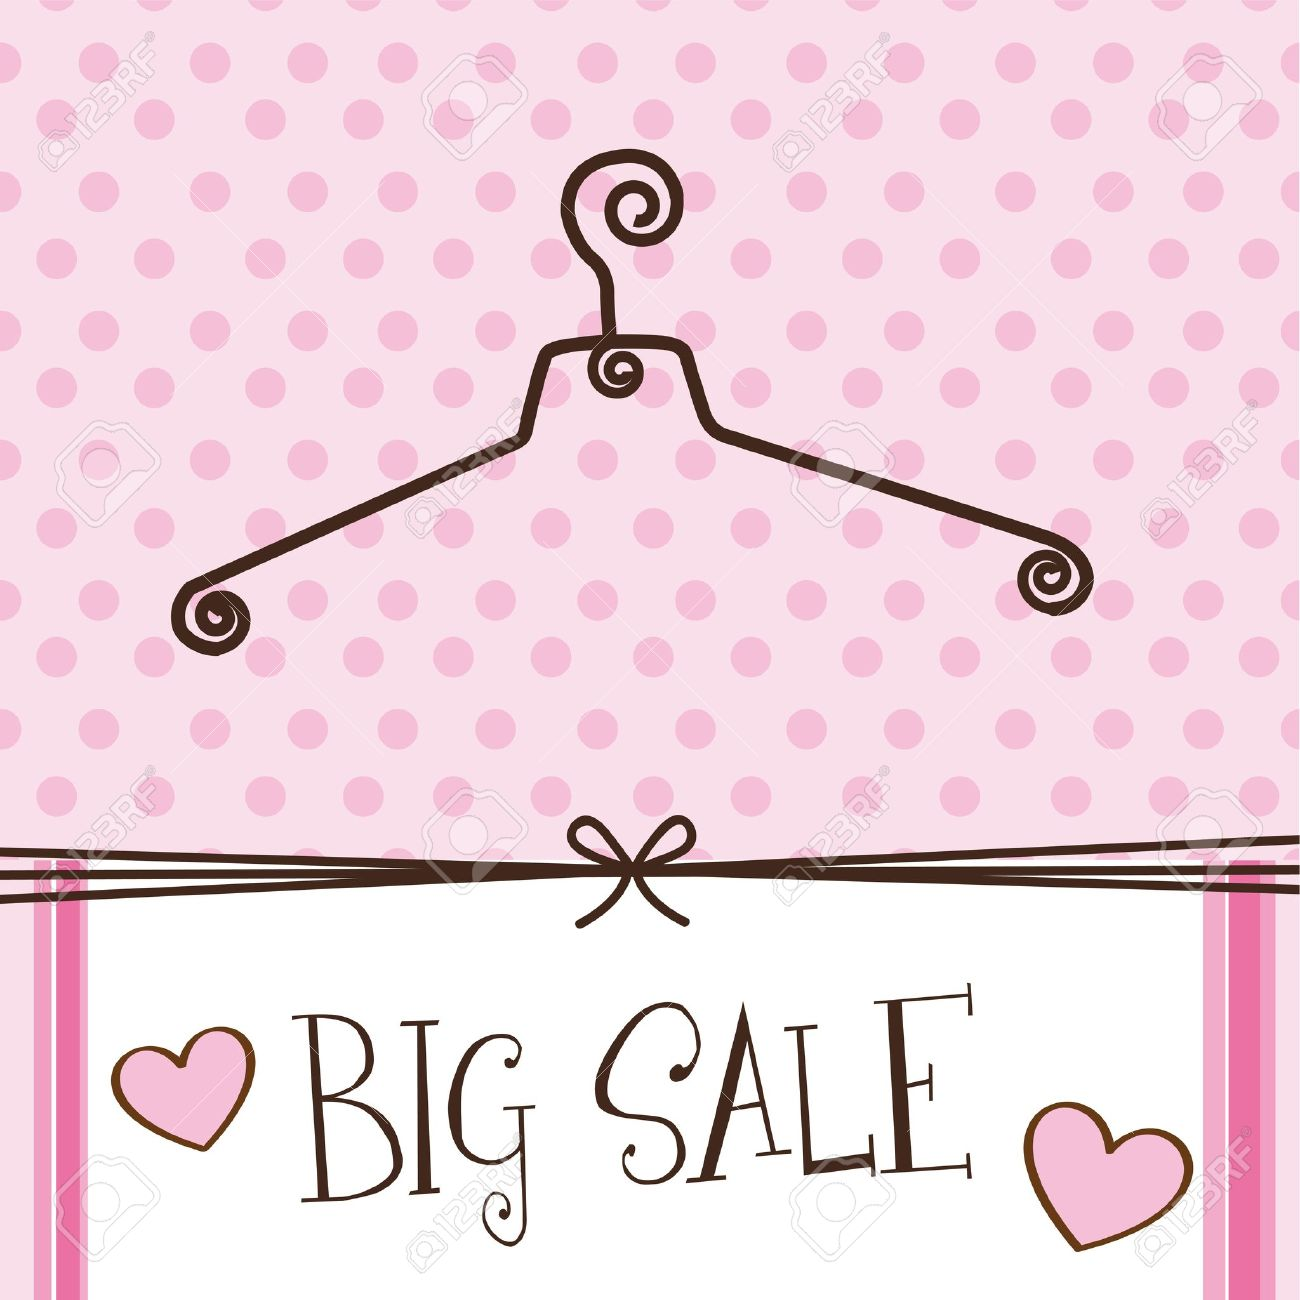 cute hanger with big sale text over pink background. Stock Vector - 12459355